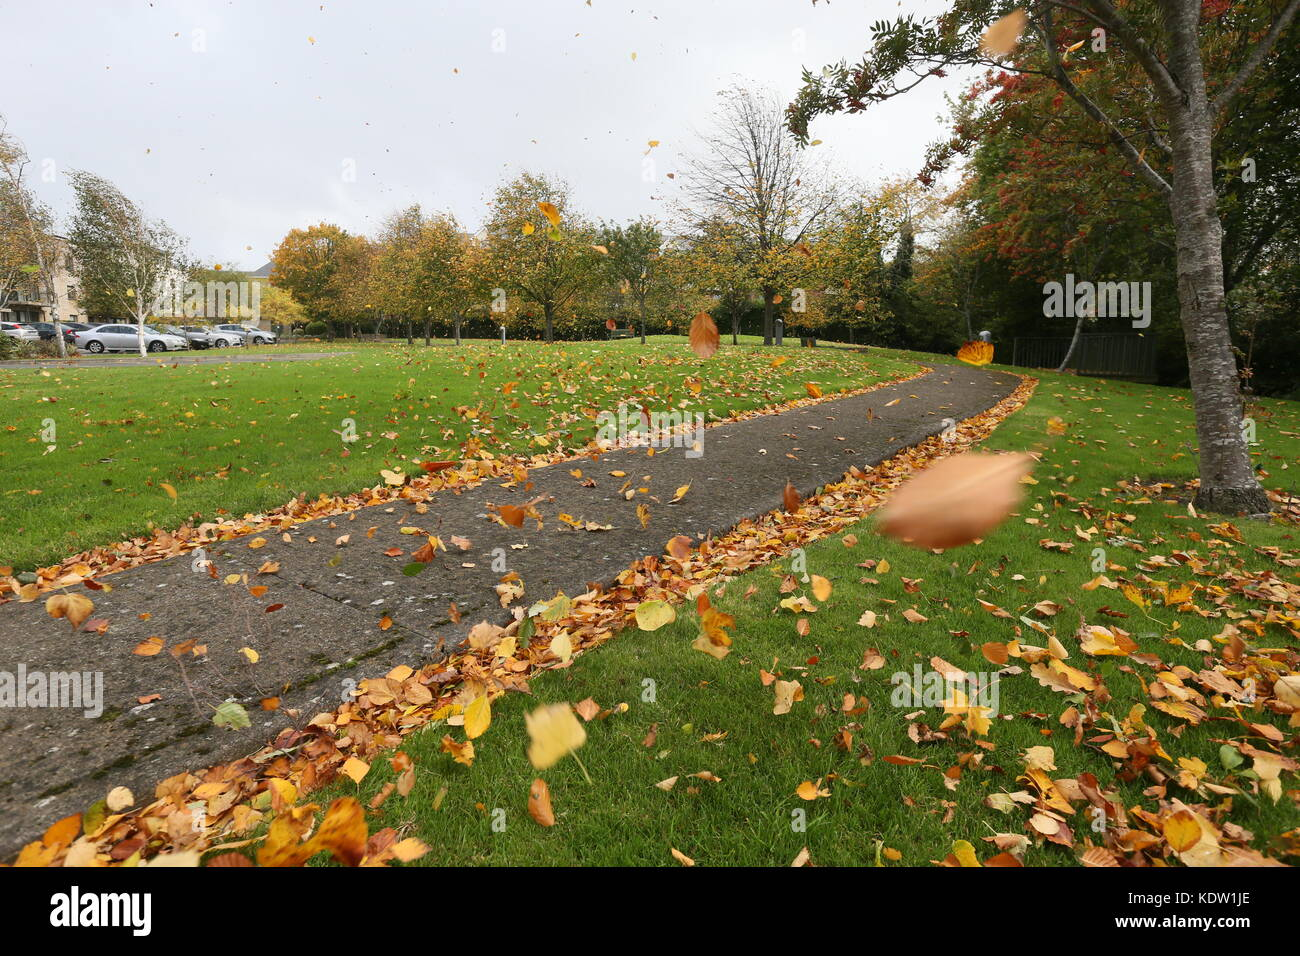 Dublin, Ireland. 12th Oct, 2017. Leaves fly around in green area as Ophelia arrives in Dublin. Image from Dublin, - Stock Image